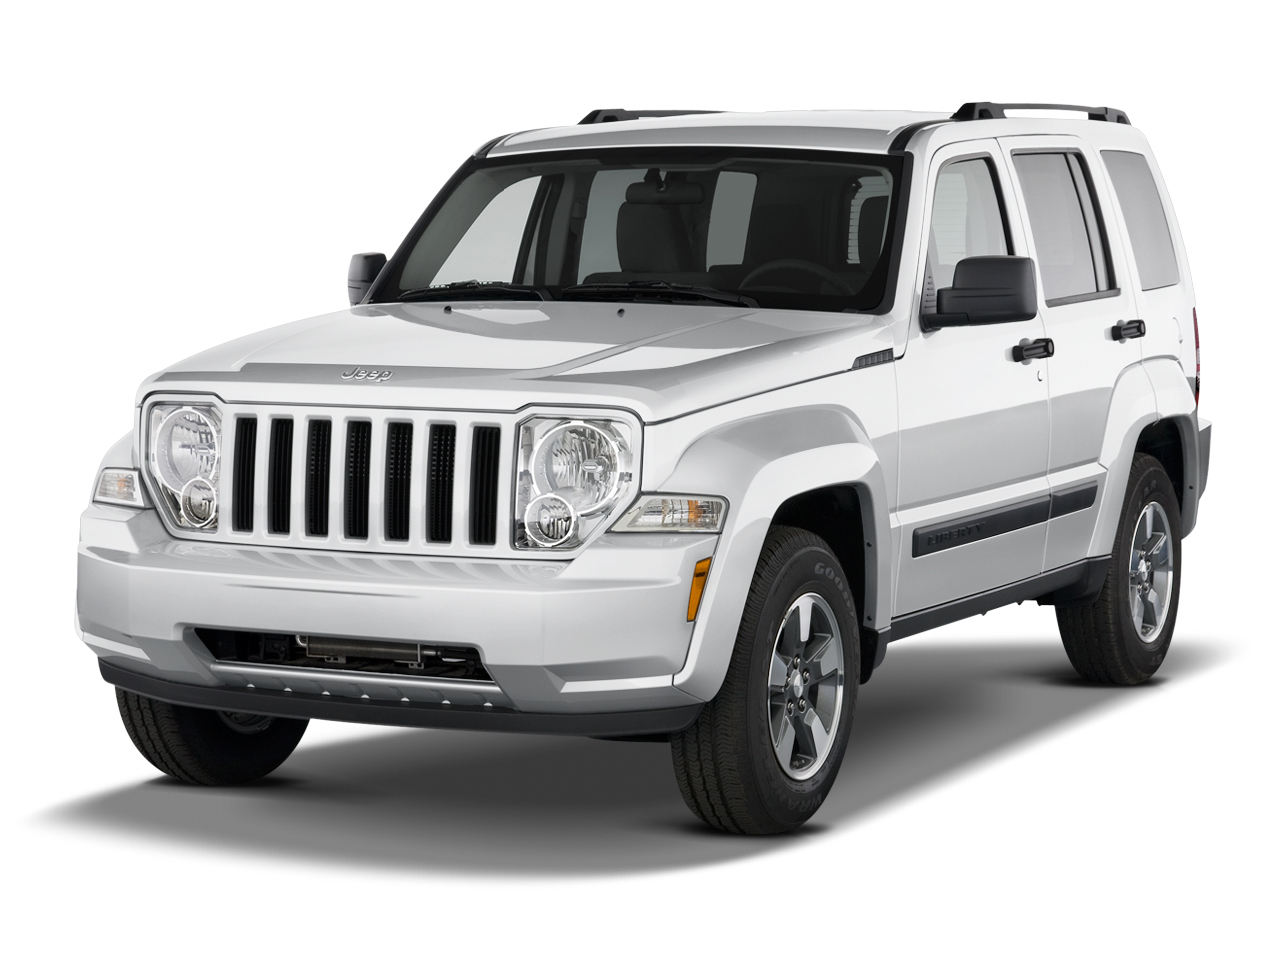 New And Used Jeep Liberty For Sale The Car Connection 2012 Jeep Liberty Review, Ratings, Specs, Prices, and Photos - The Car ...